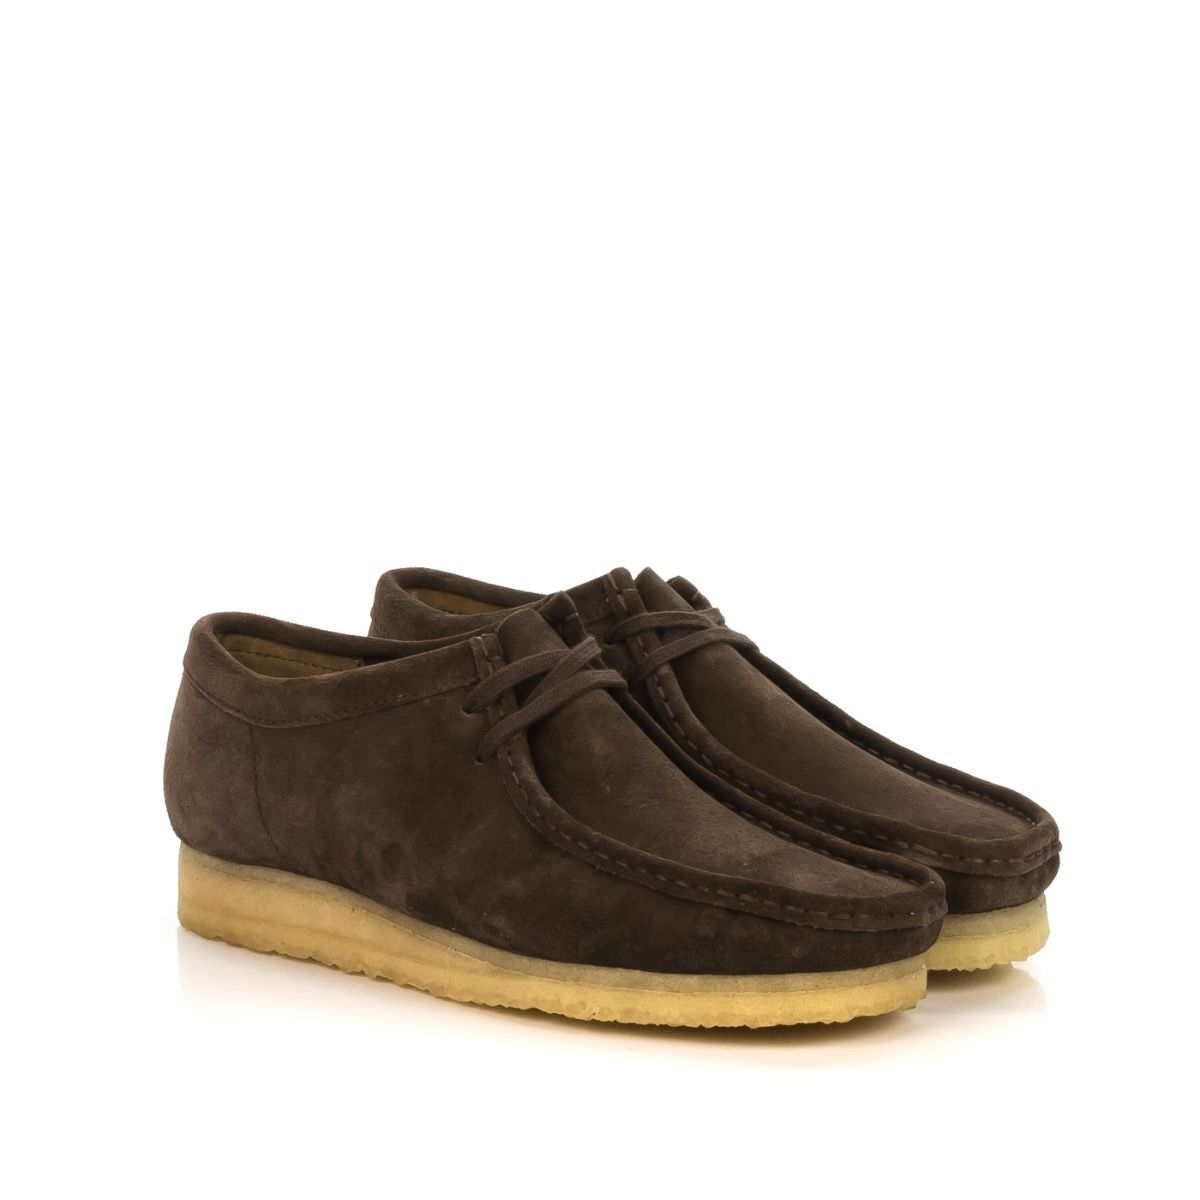 Official Clarks Online Boutique | Designer Shoes